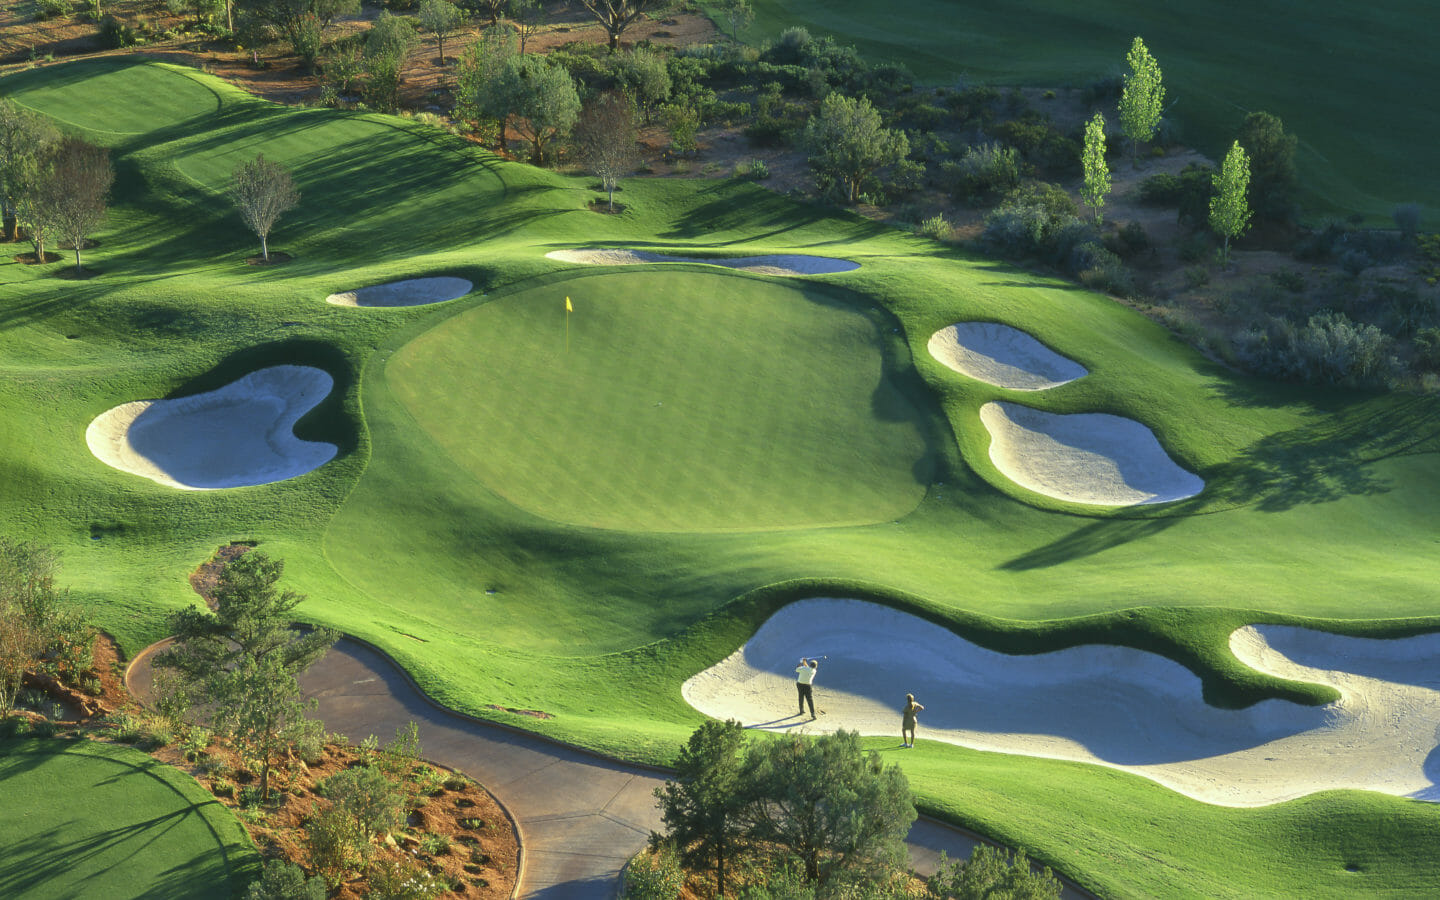 aerial view of a golf green surrounded by trees